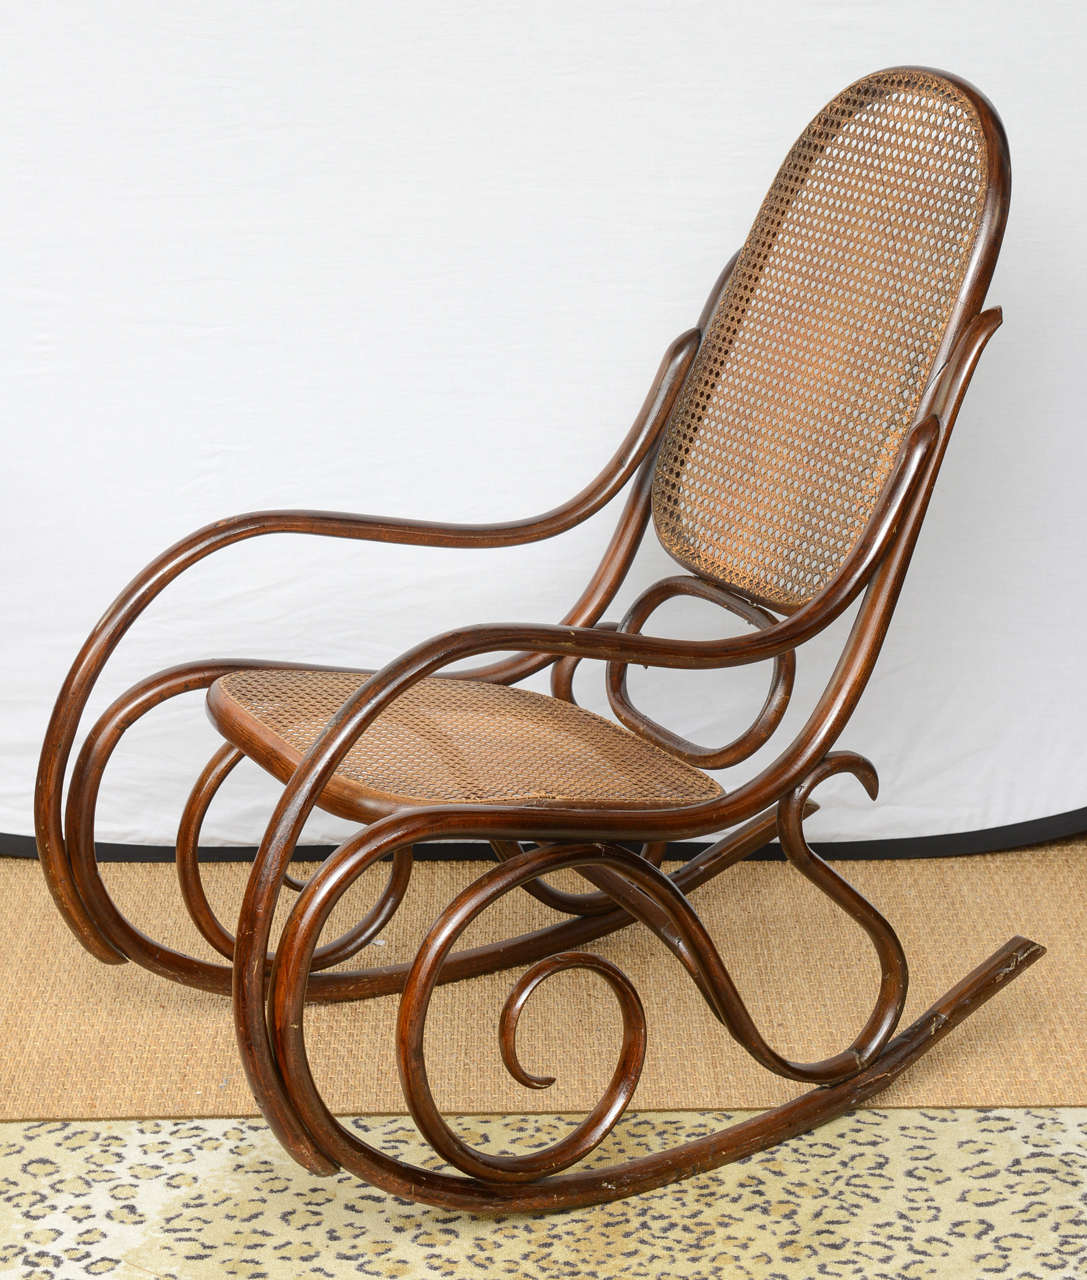 Austria, 20th Century Charming Rocking Chair In Wood With Cane Back And  Seat.